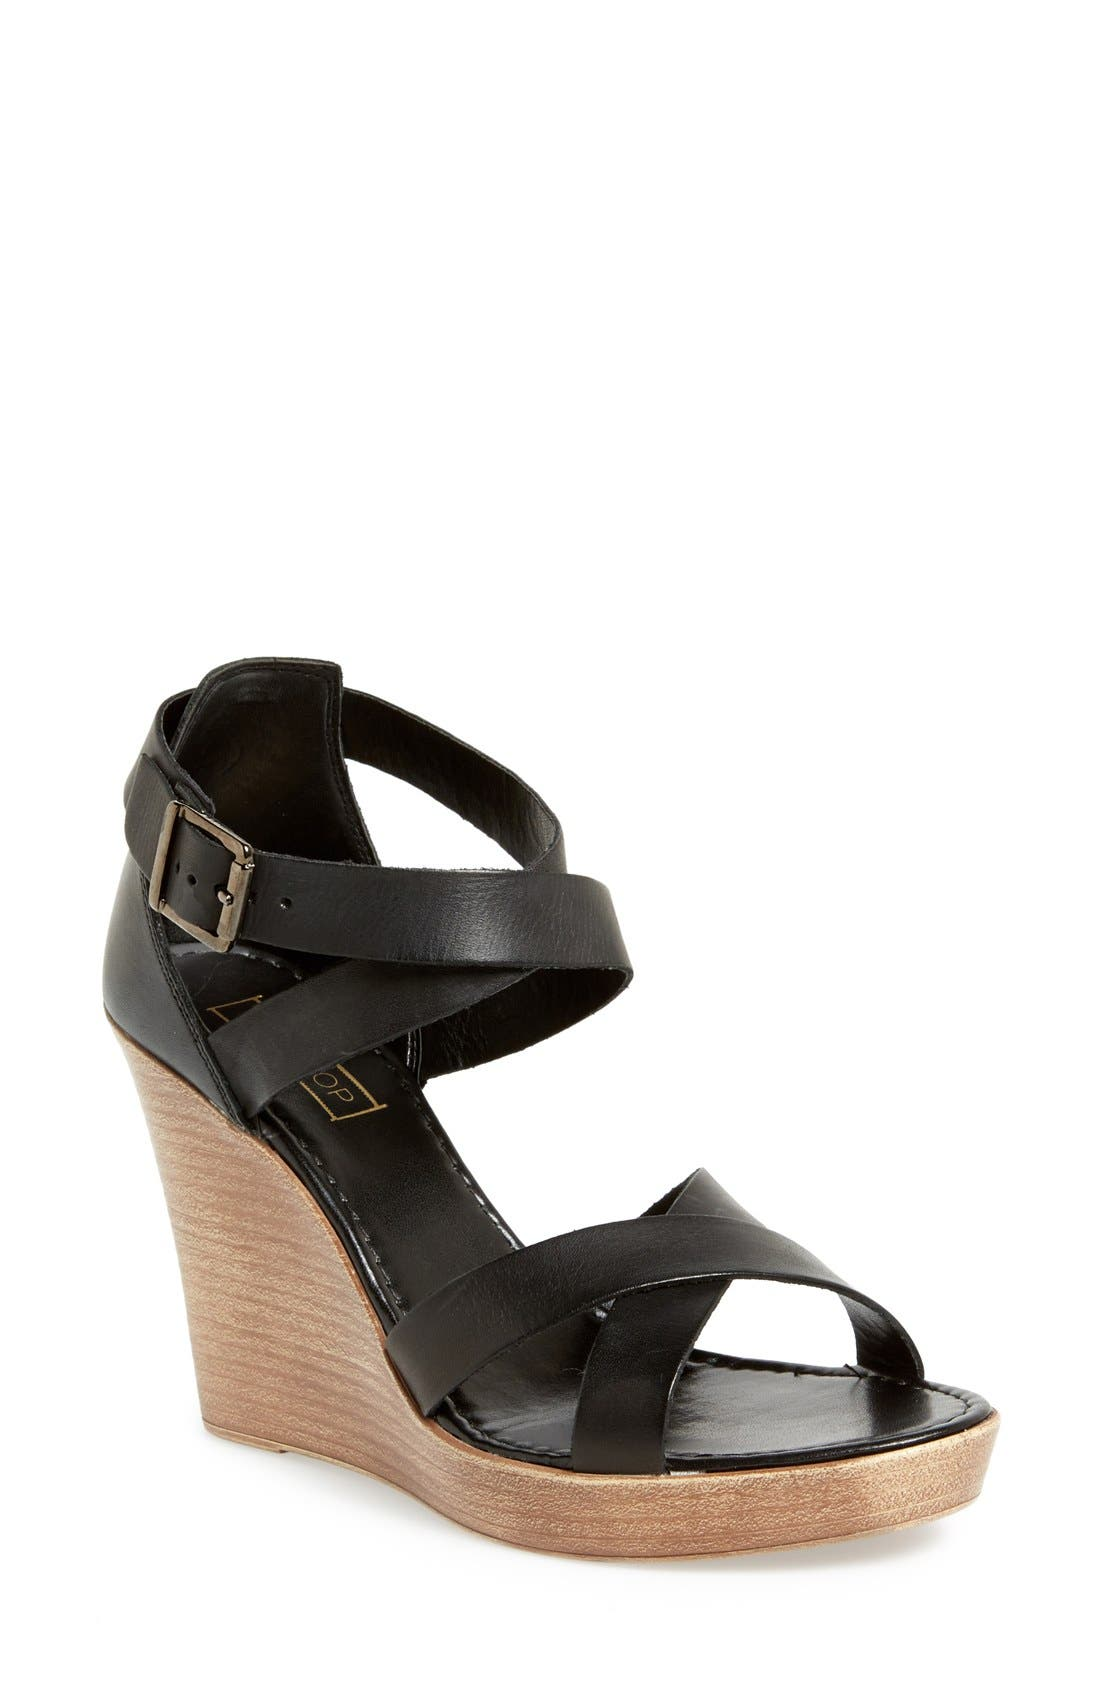 'Wizard' Wedge Sandal,                         Main,                         color, 001